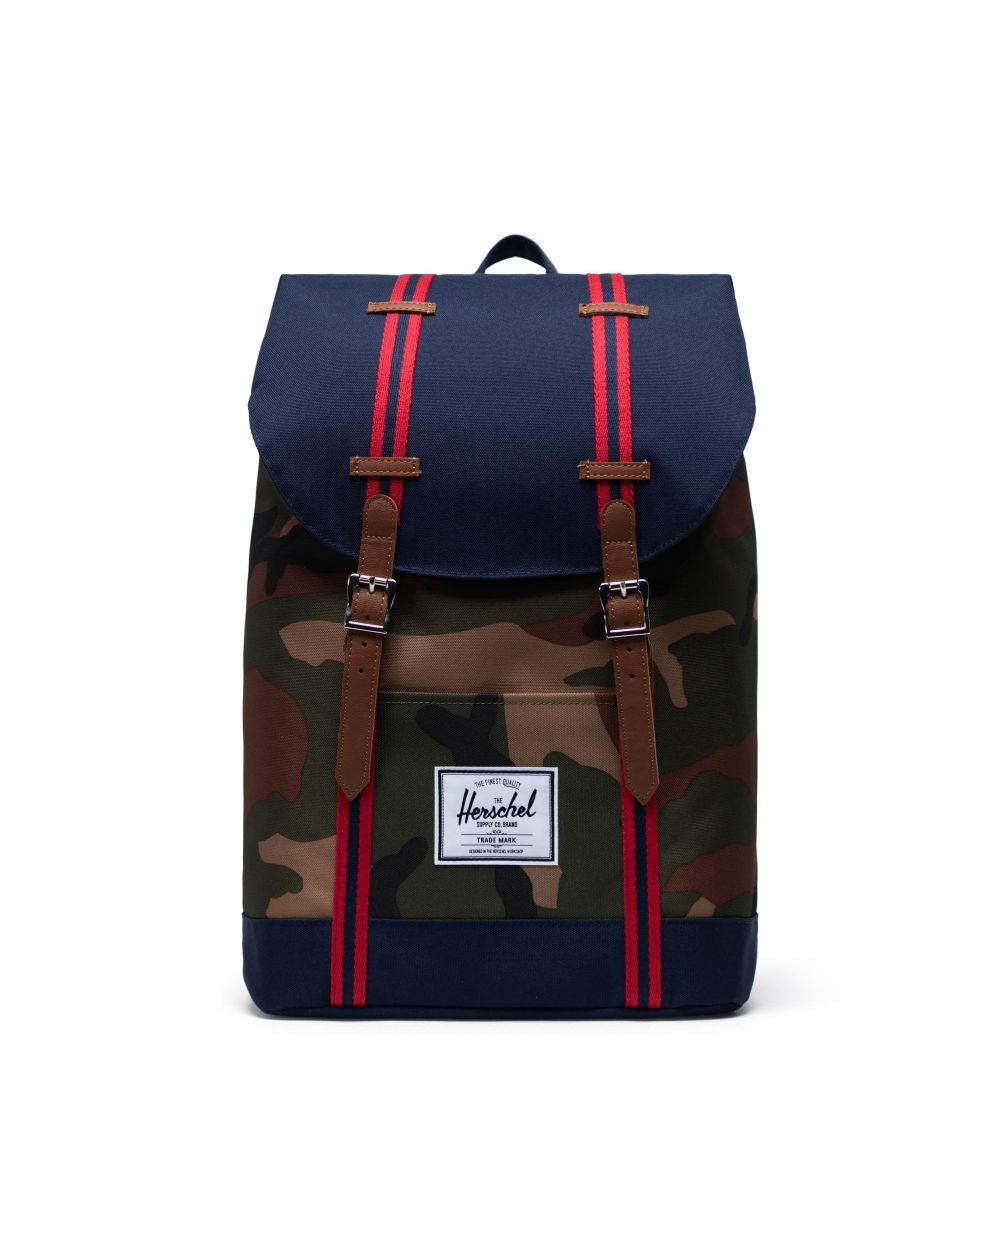 Herschel Retreat - Woodland Camo/Peacoat/Tan